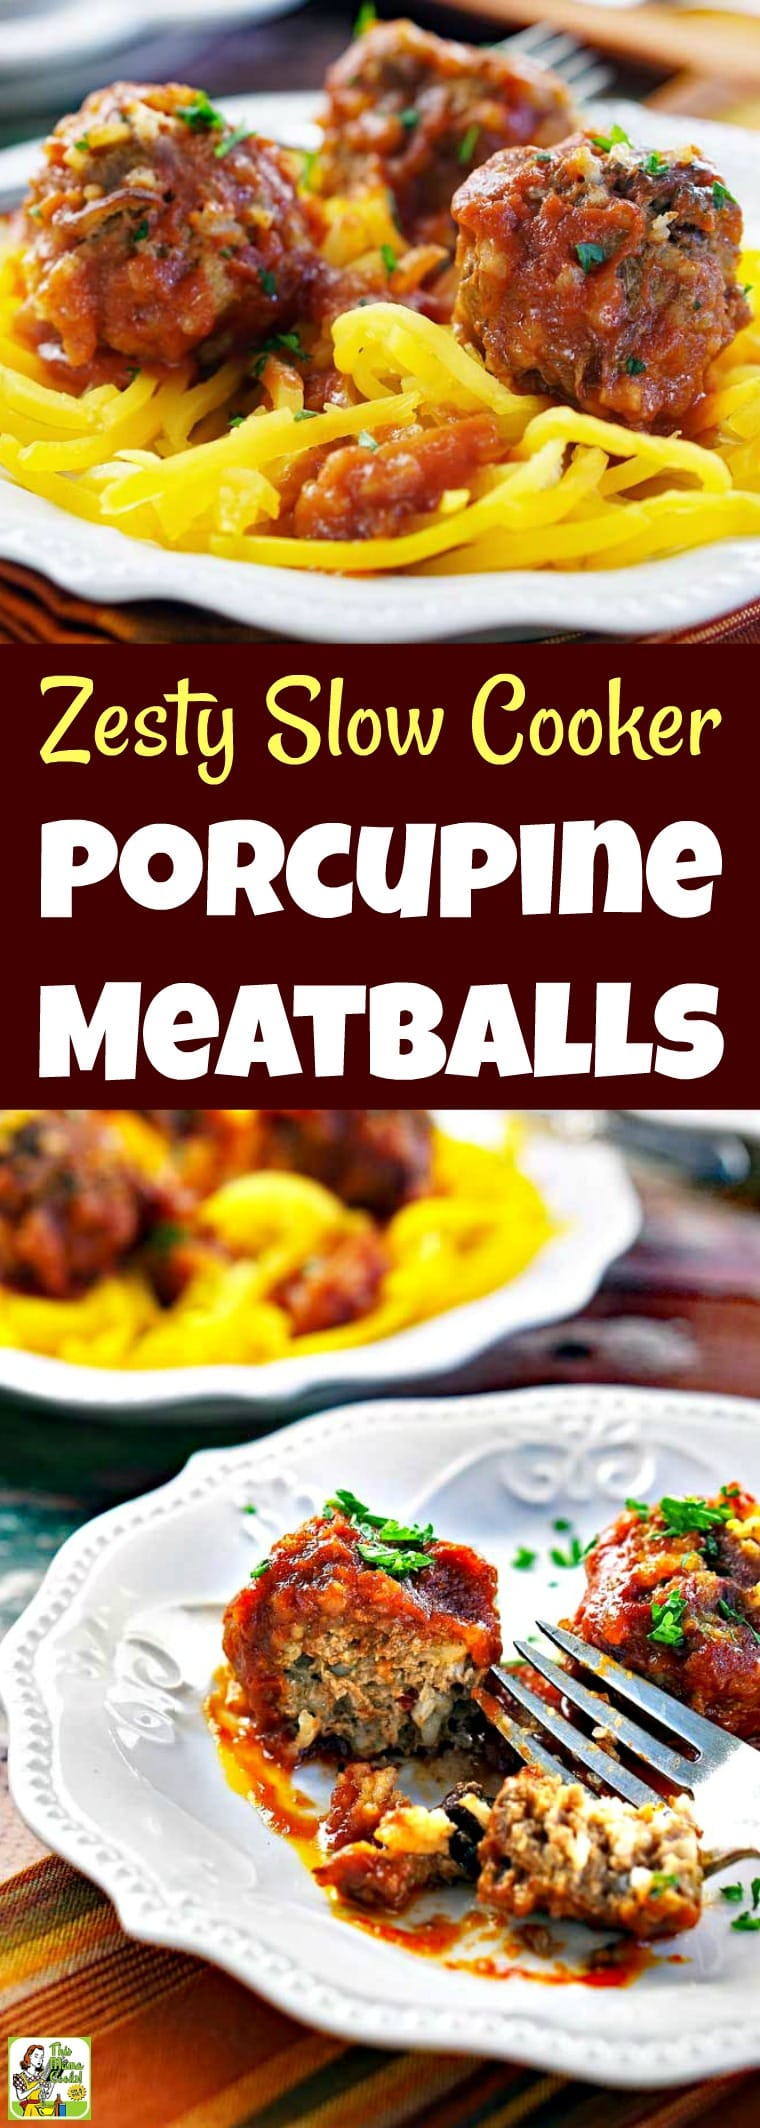 Zesty Slow Cooker Porcupine Meatballs Recipe